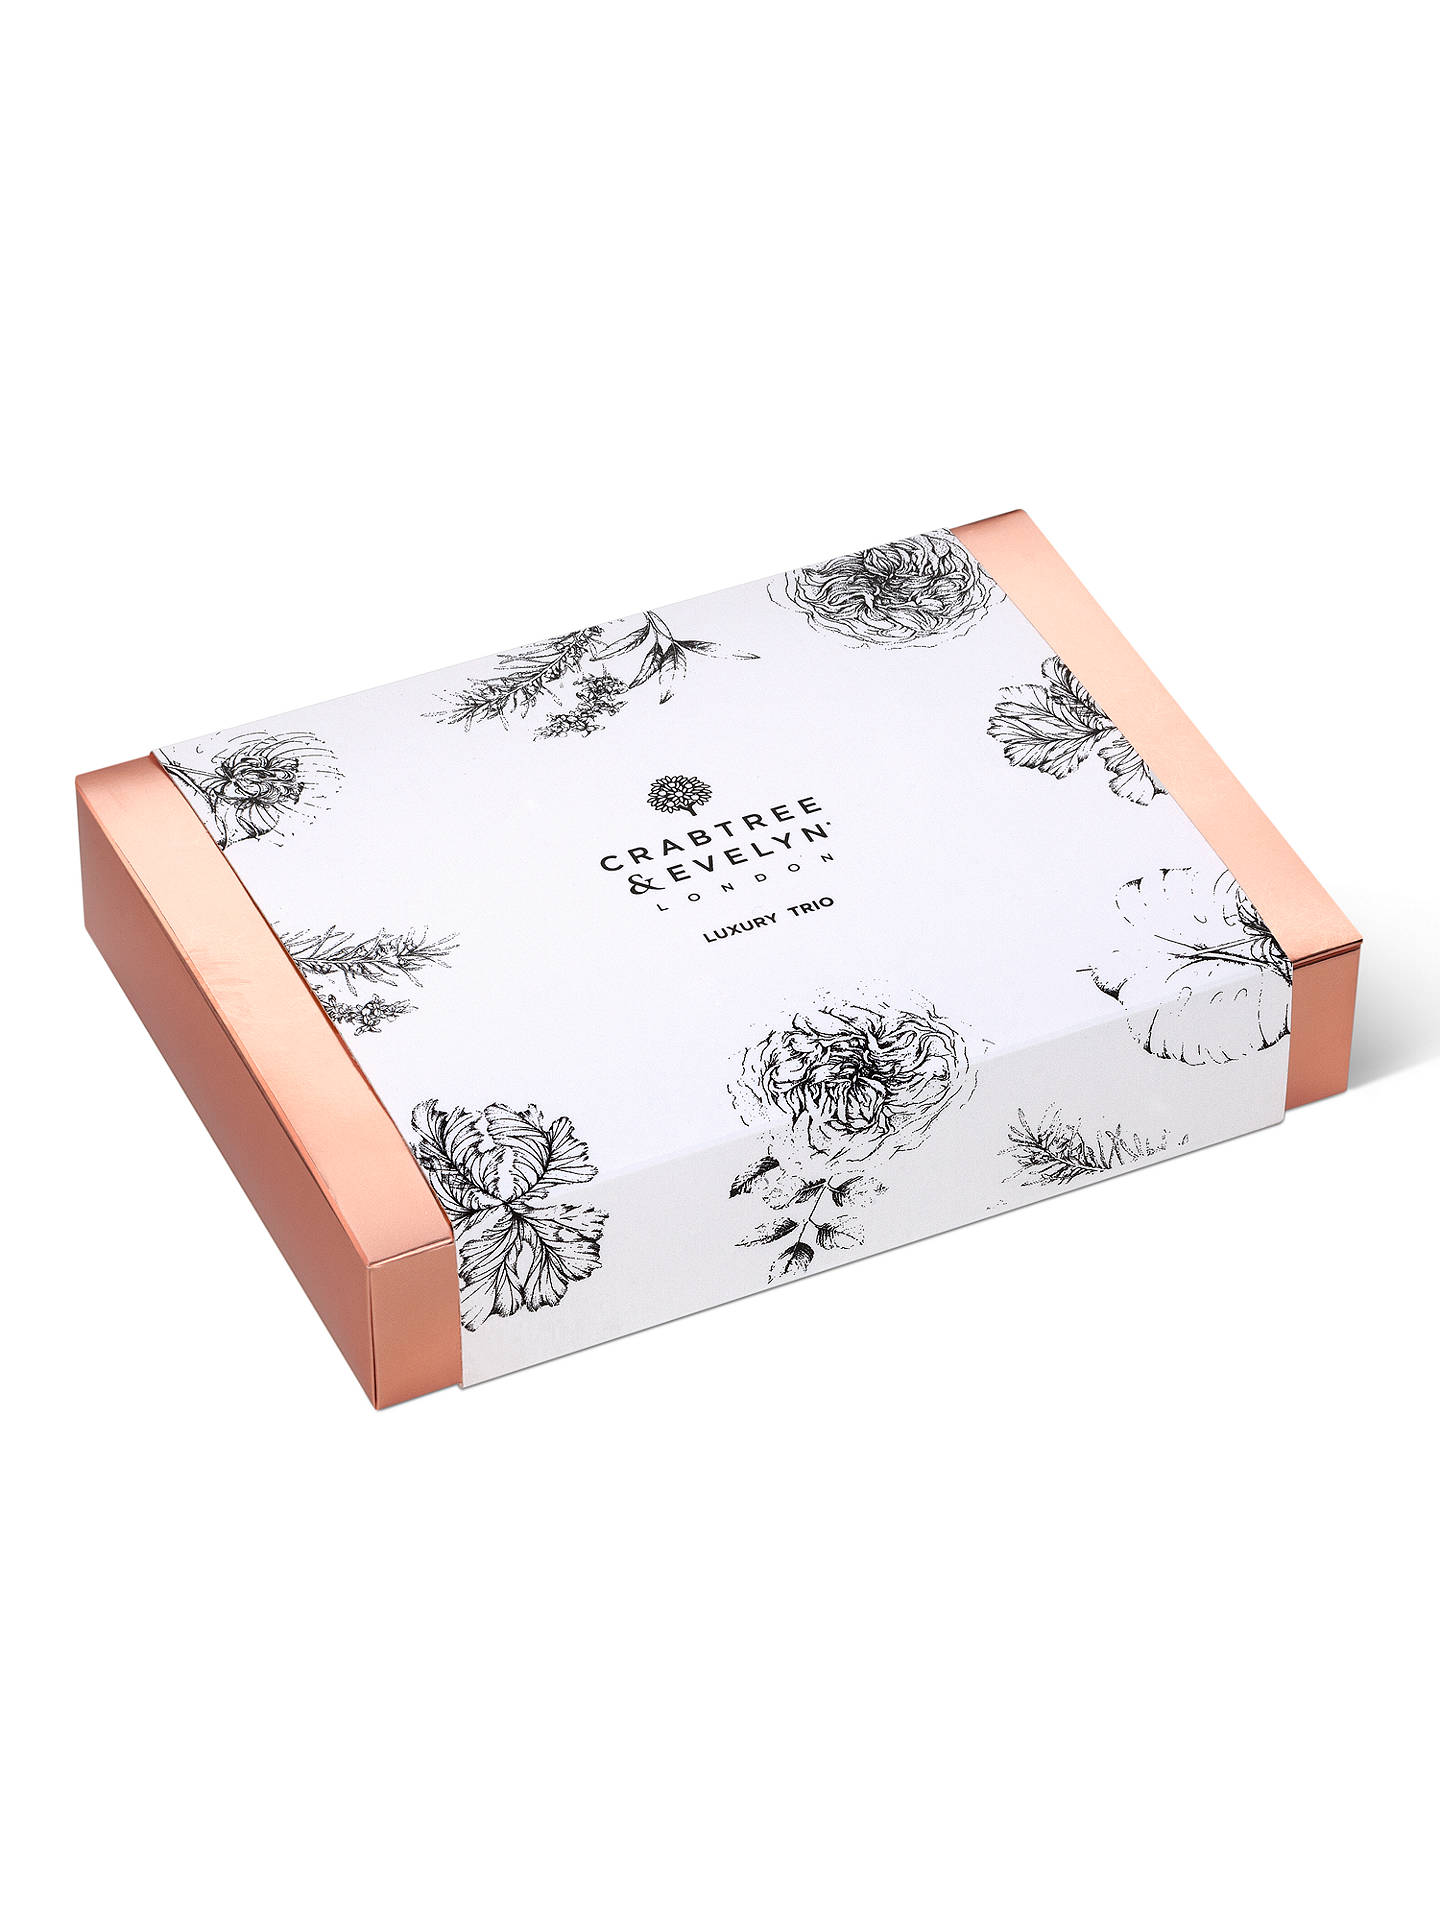 70a9230623f7 ... Buy Crabtree & Evelyn Luxury Hand Cream Trio Online at johnlewis.com